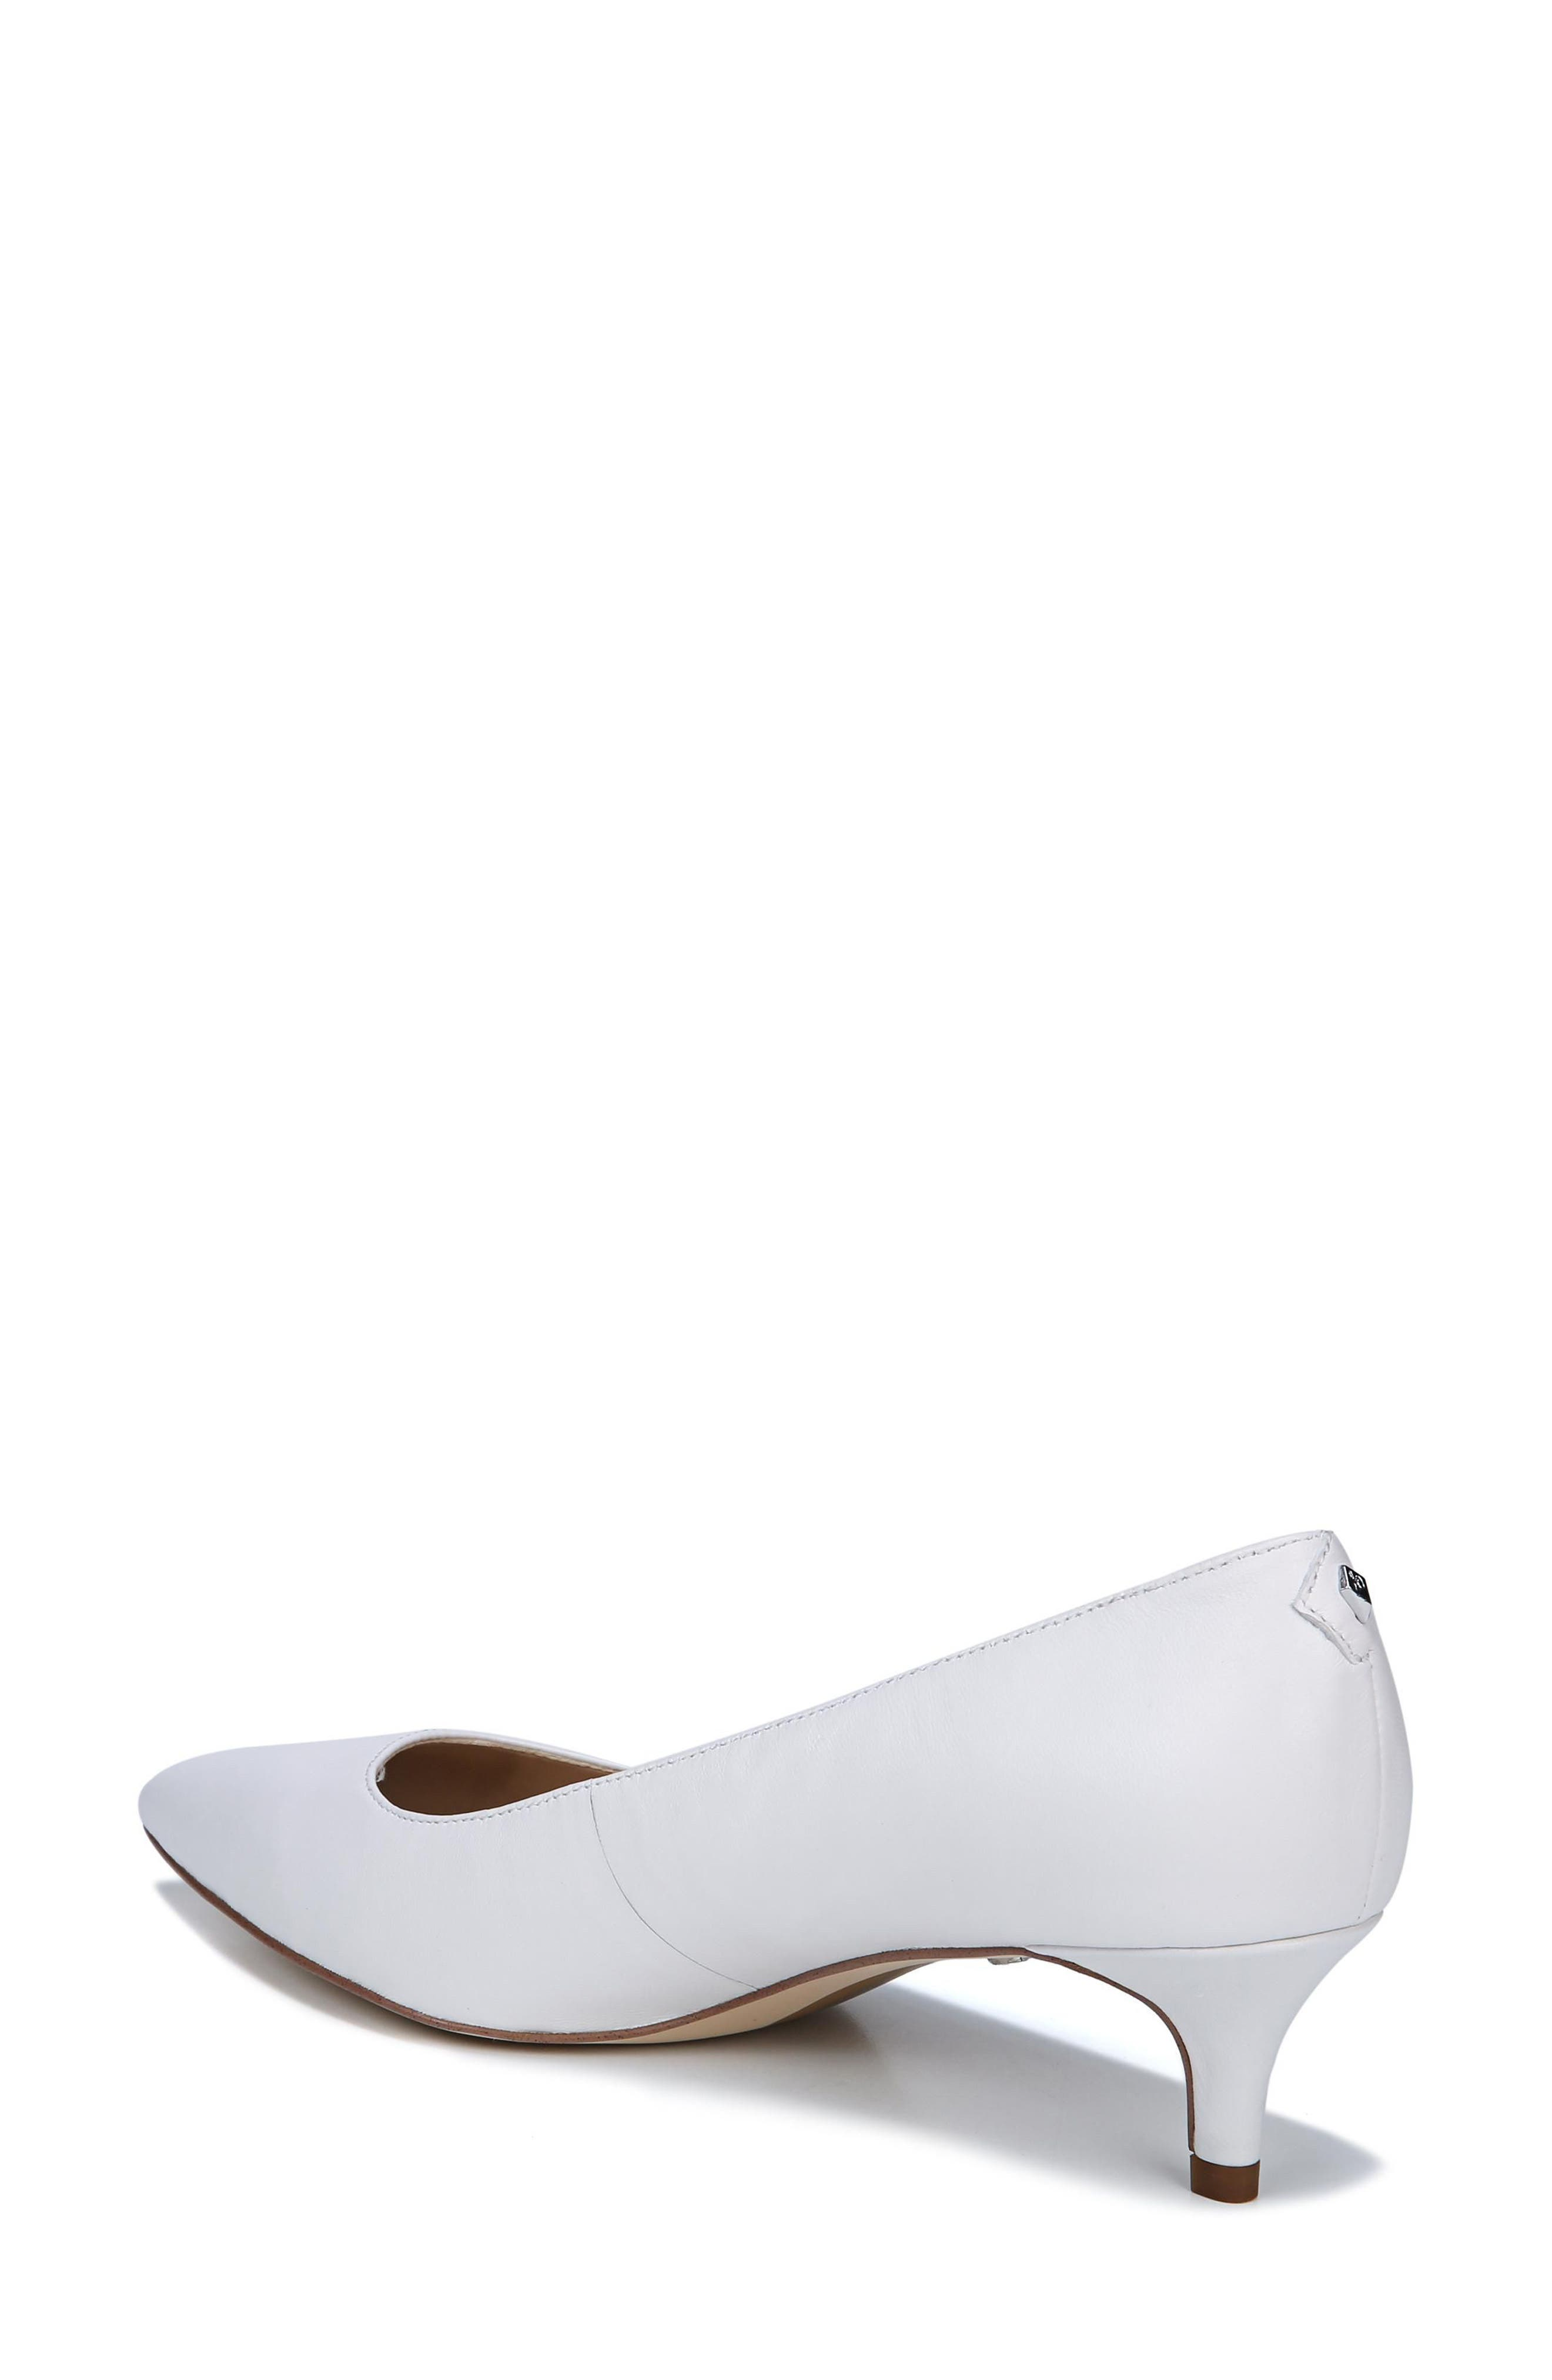 Dori Pump,                             Alternate thumbnail 2, color,                             BRIGHT WHITE LEATHER